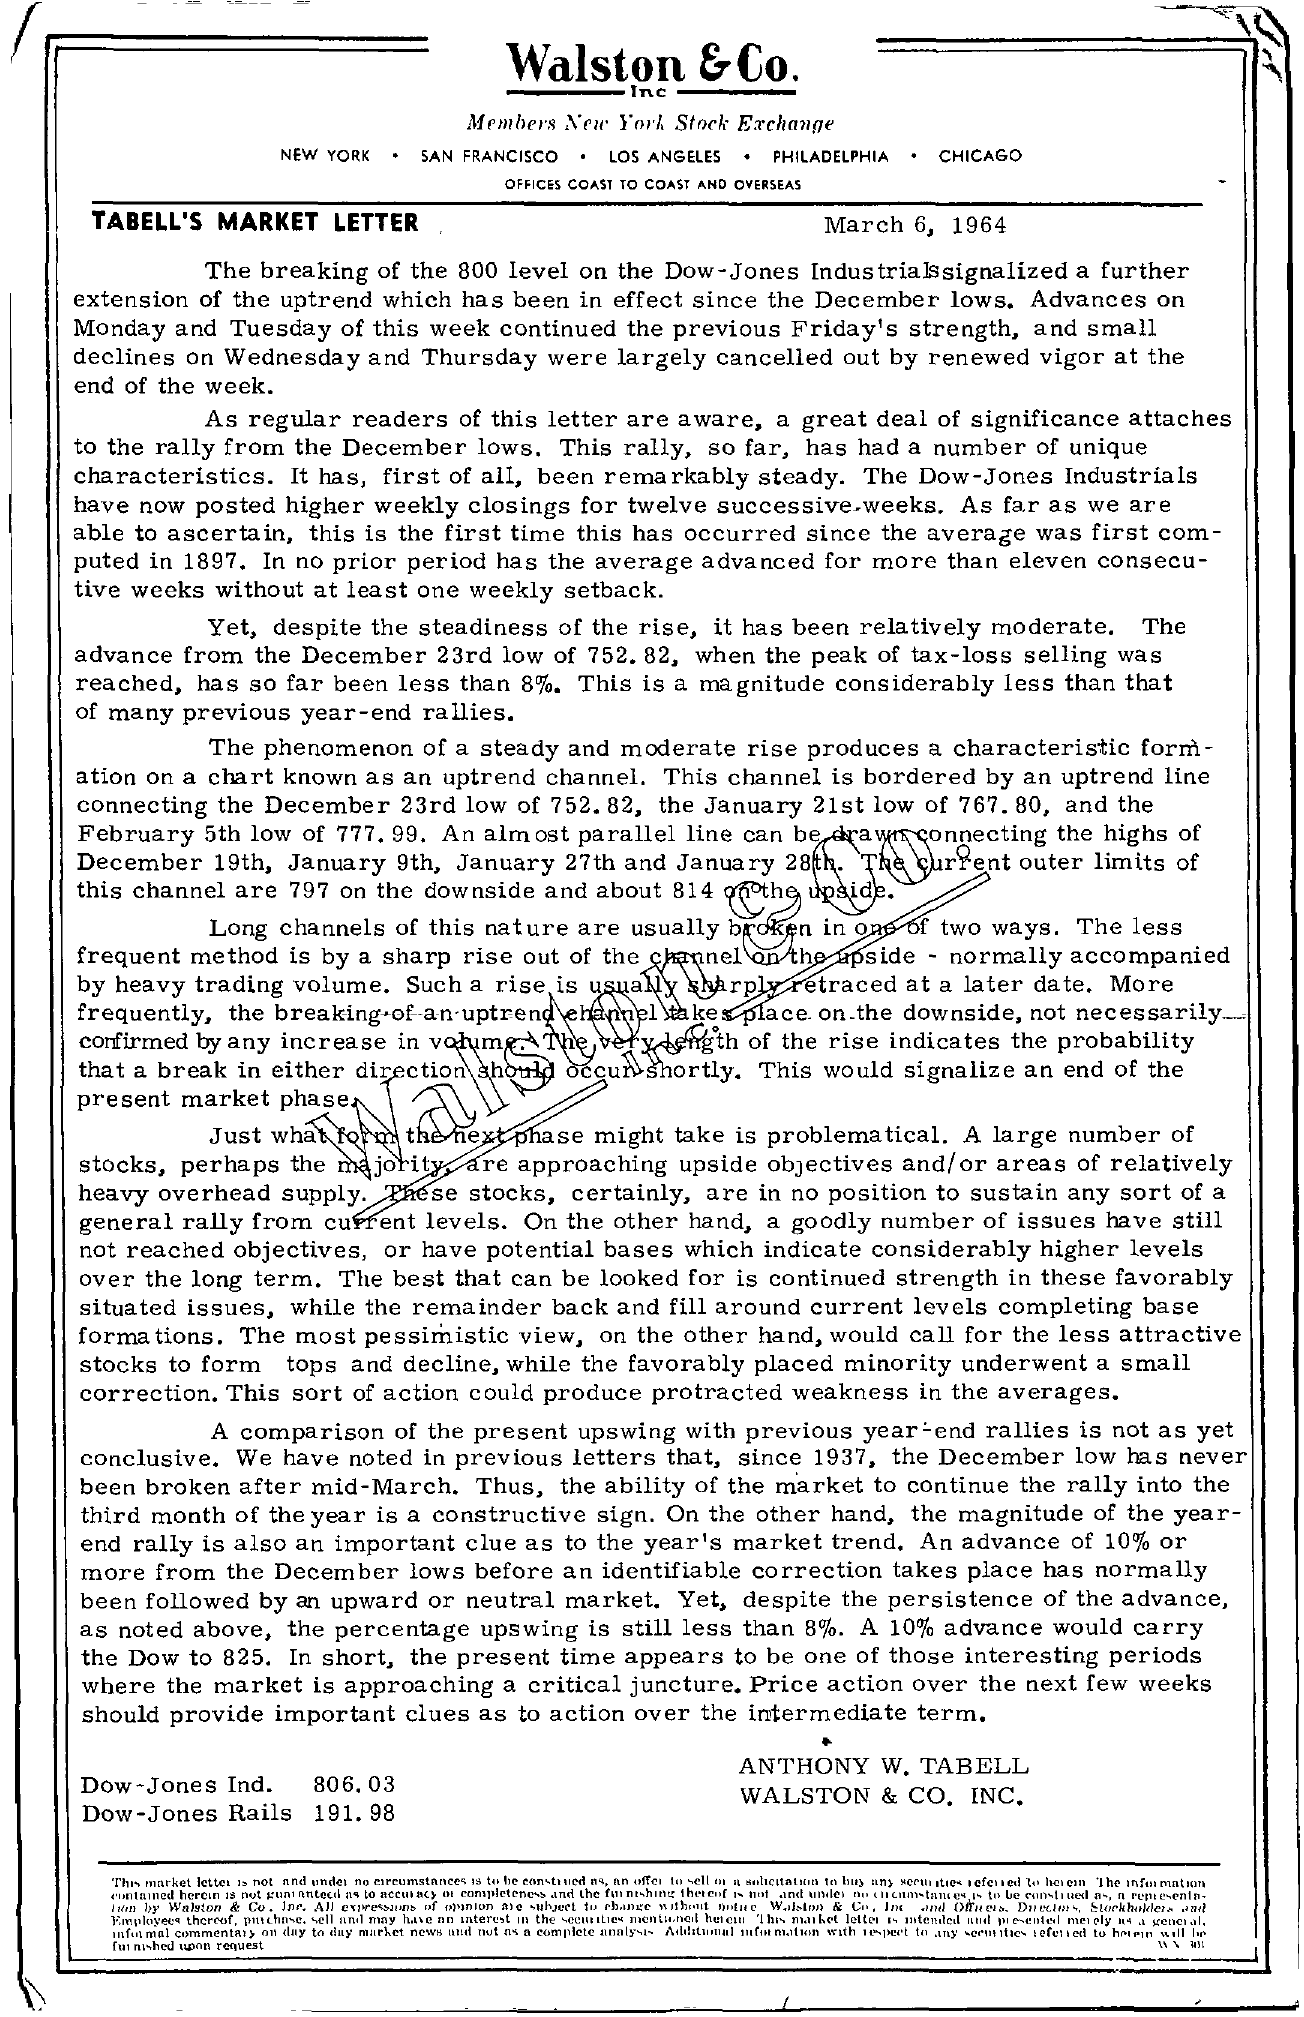 Tabell's Market Letter - March 06, 1964